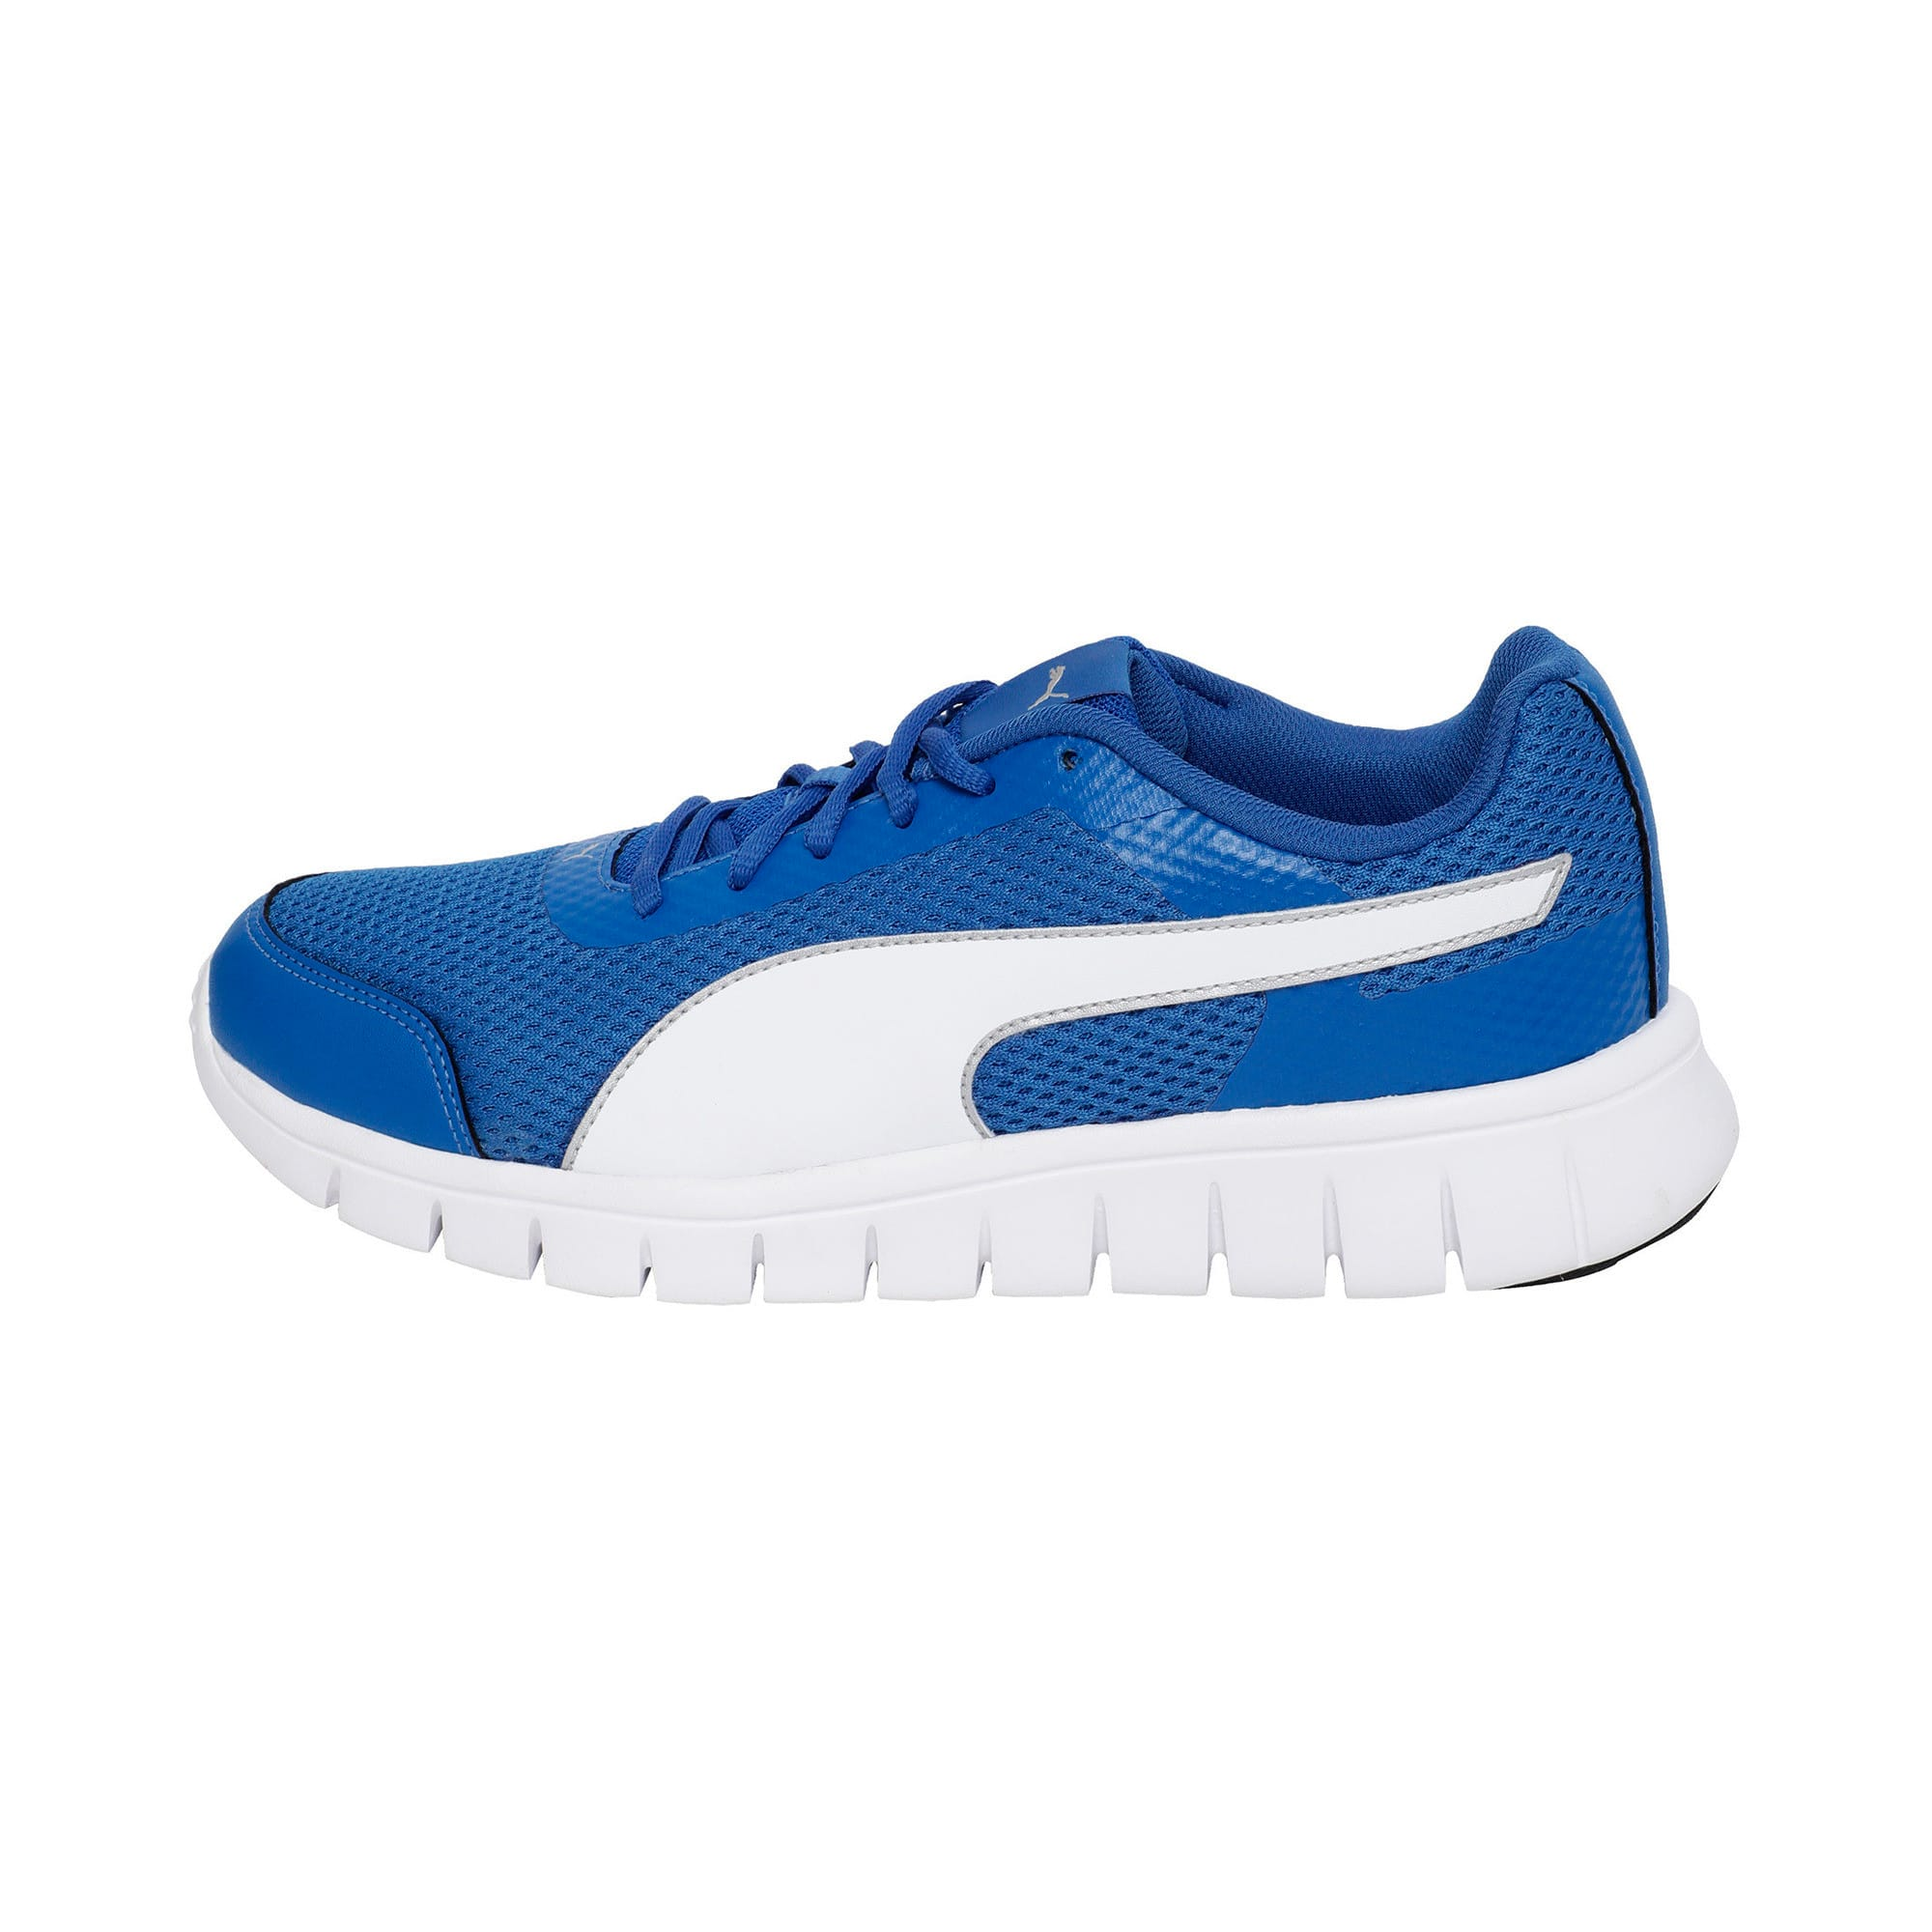 Thumbnail 1 of PUMA Blur V2 IDP Puma Black-Puma Silver, Lapis Blue-Puma White, medium-IND